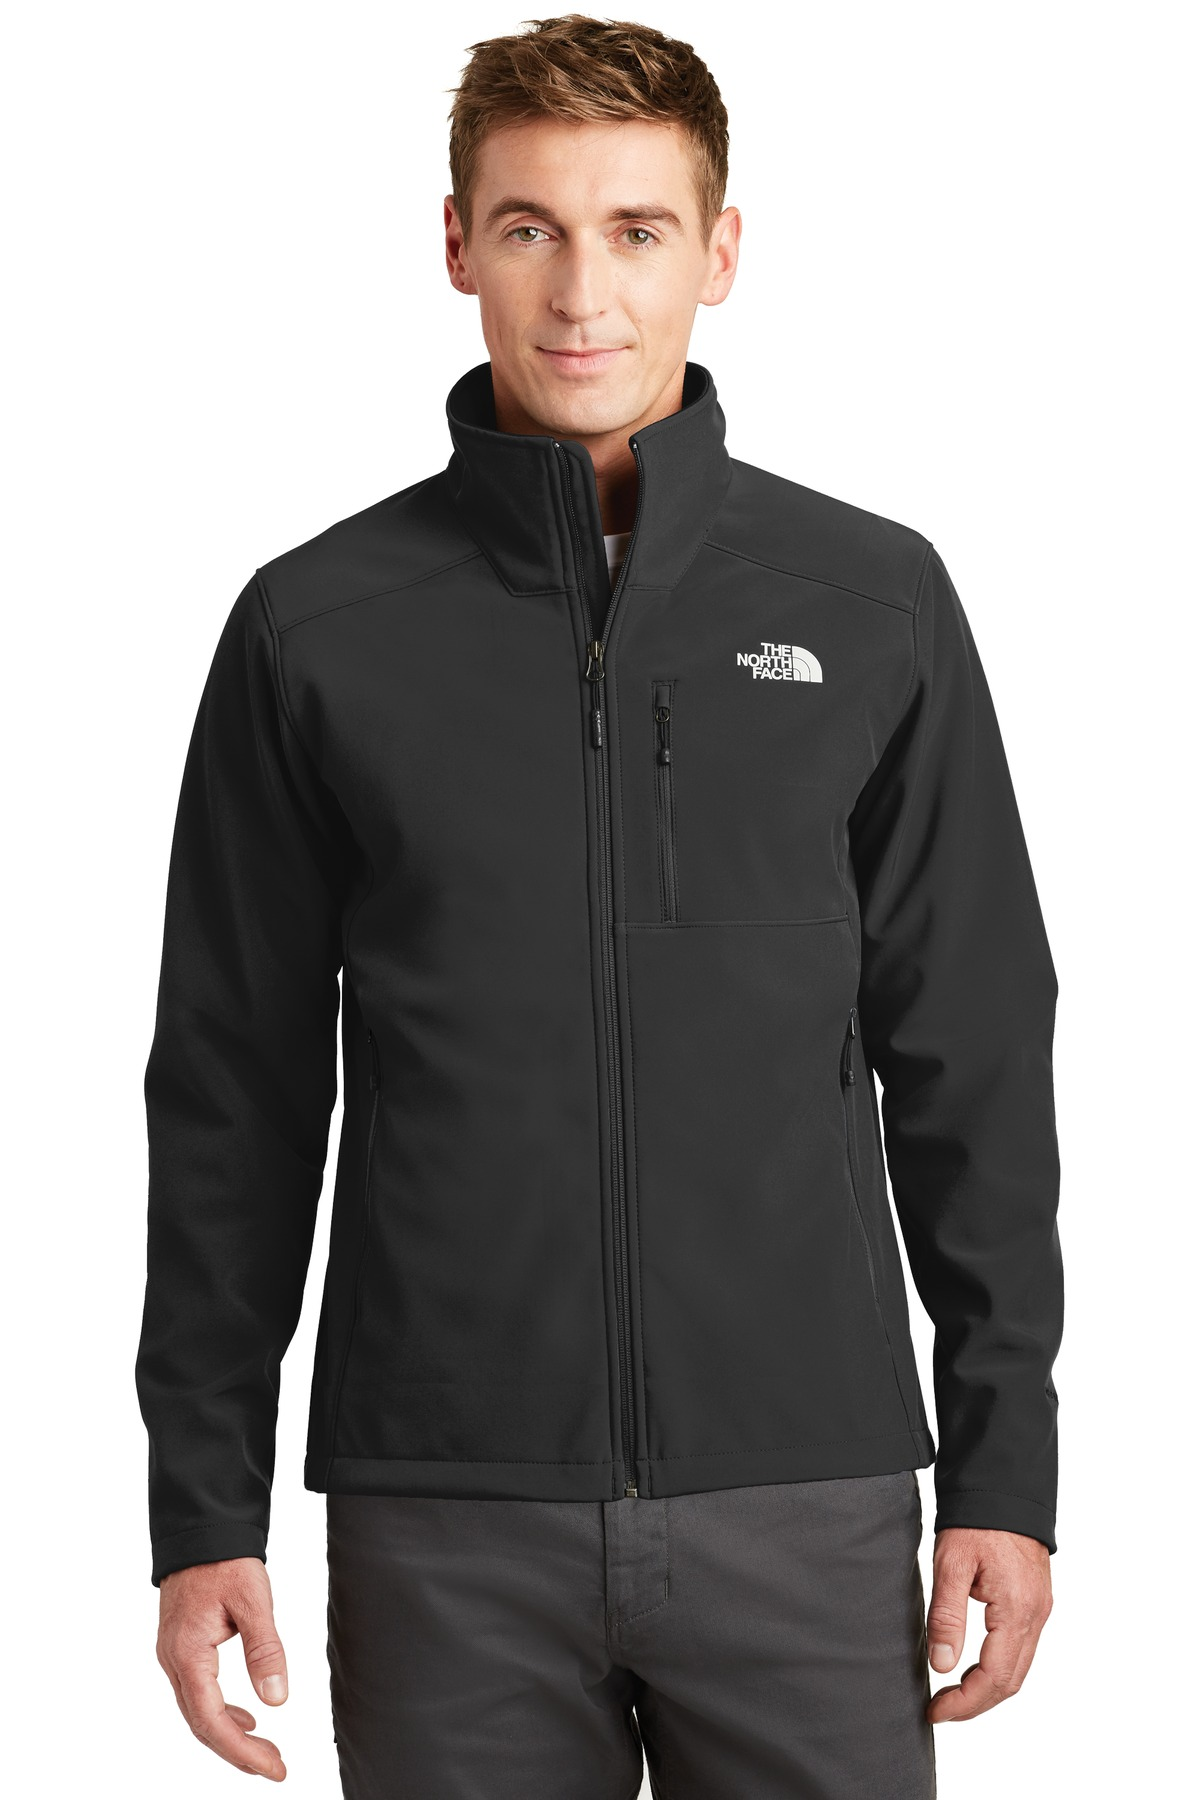 The North Face  ®  Apex Barrier Soft Shell Jacket. NF0A3LGT - TNF Black